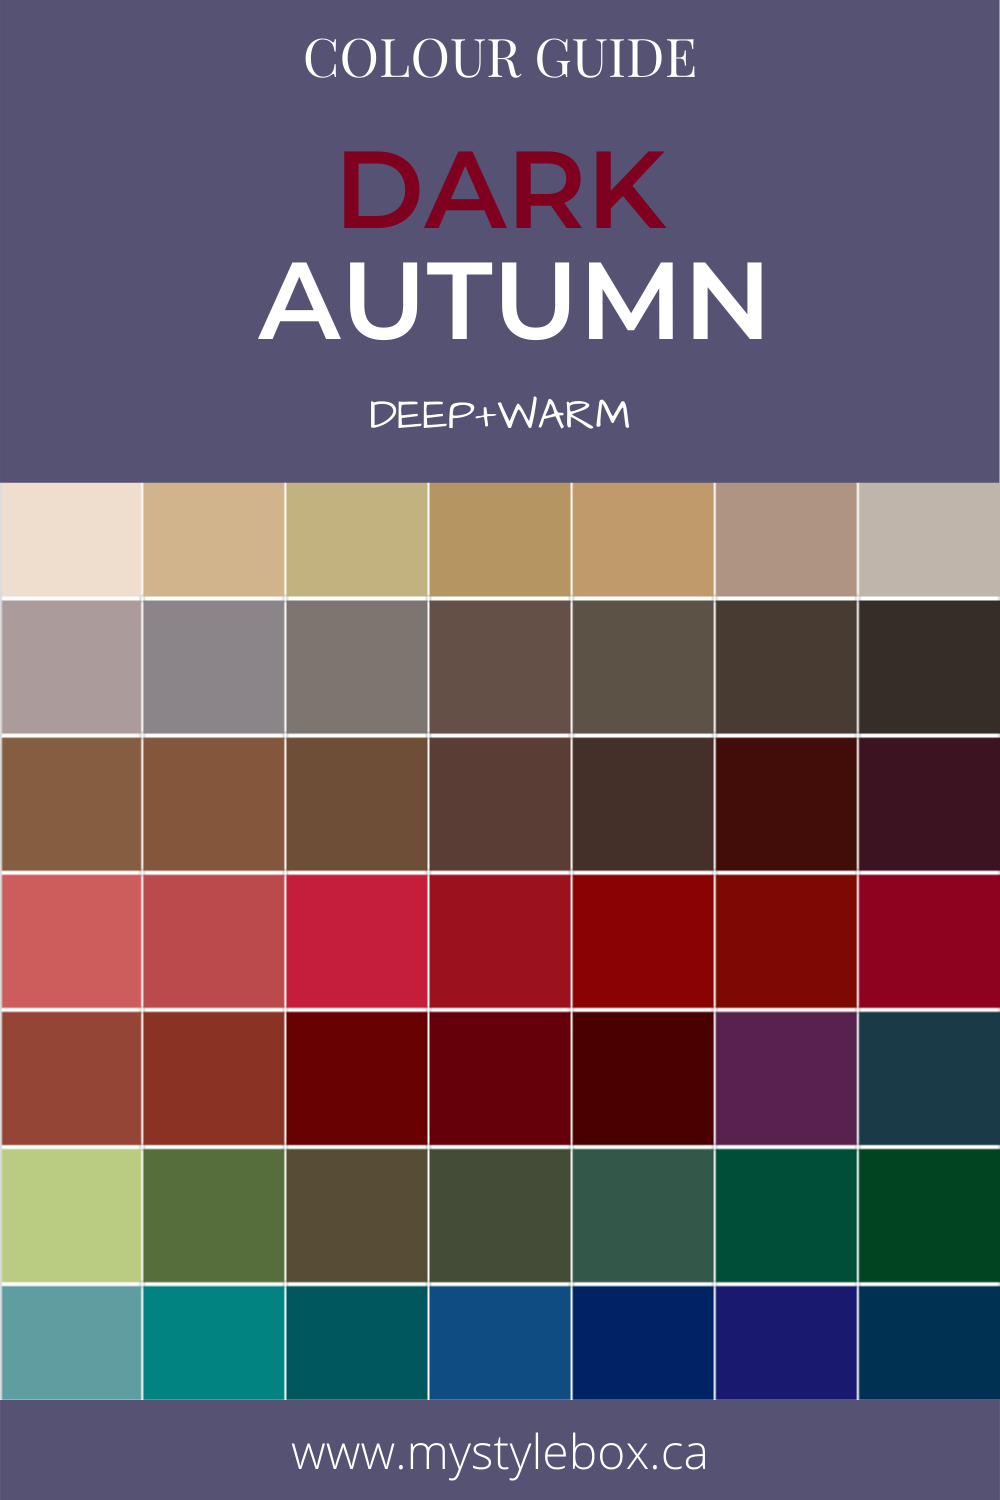 Dark Autumn Colour Guide